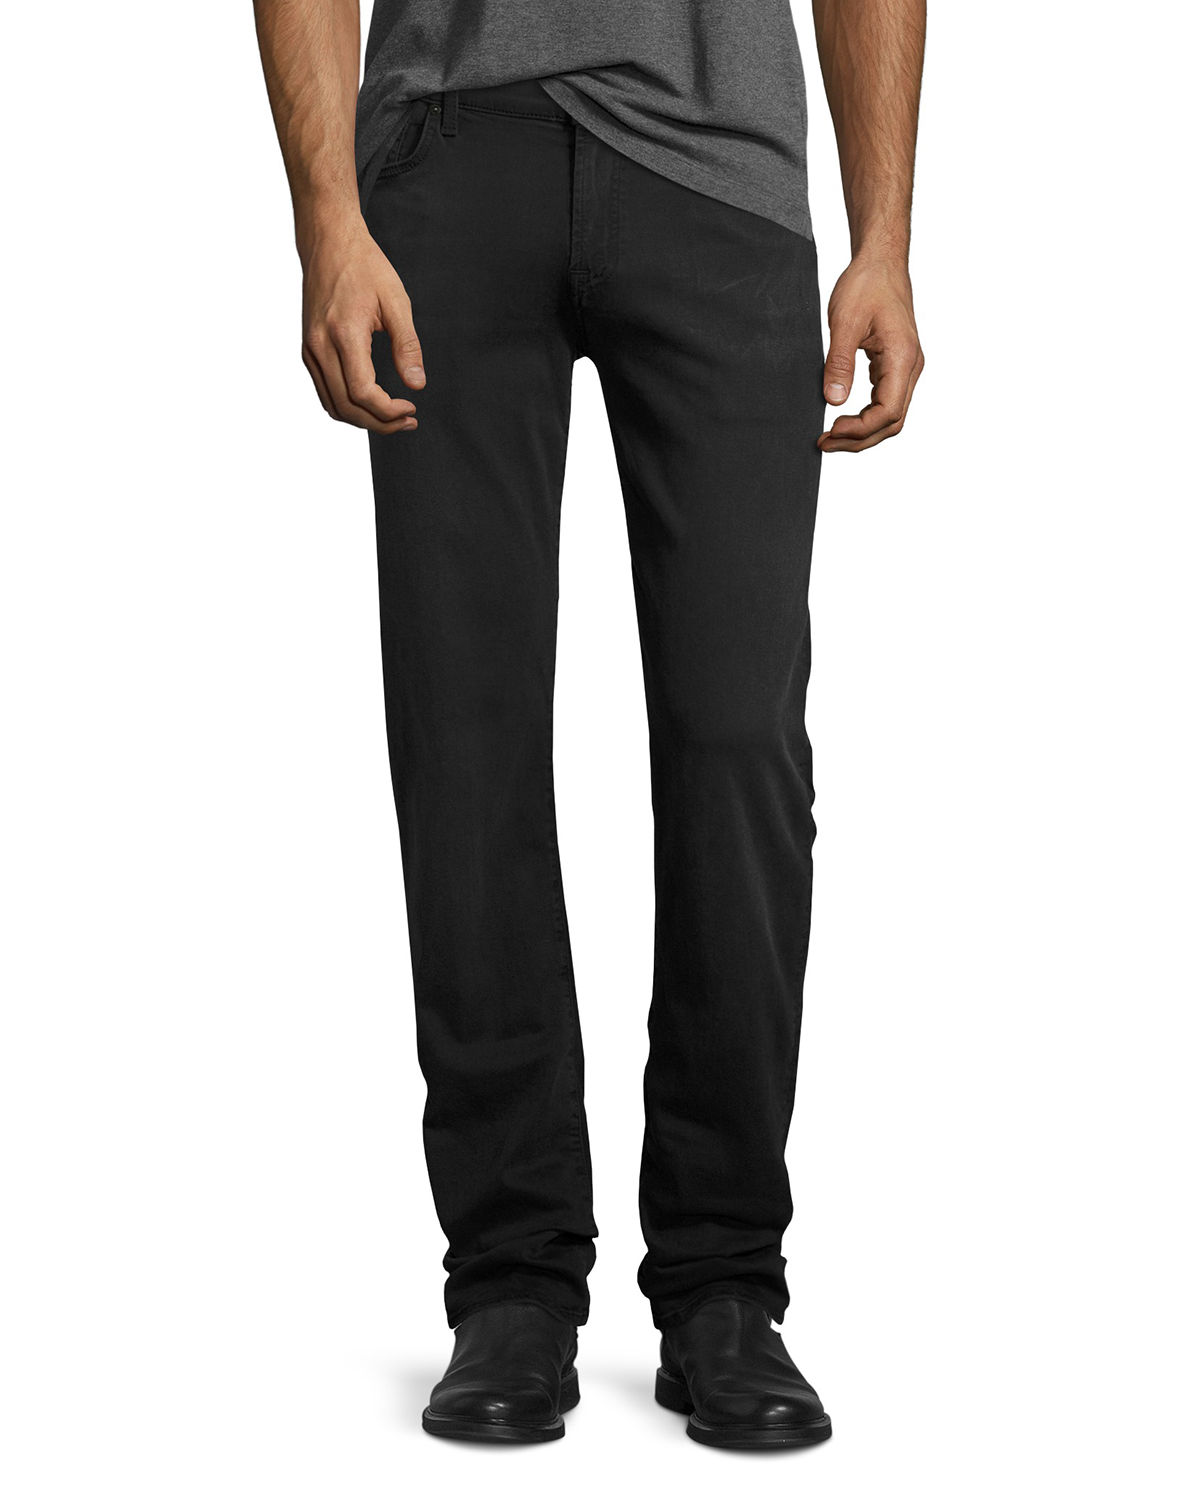 Men's Luxe Sport: Slimmy Gray Jeans